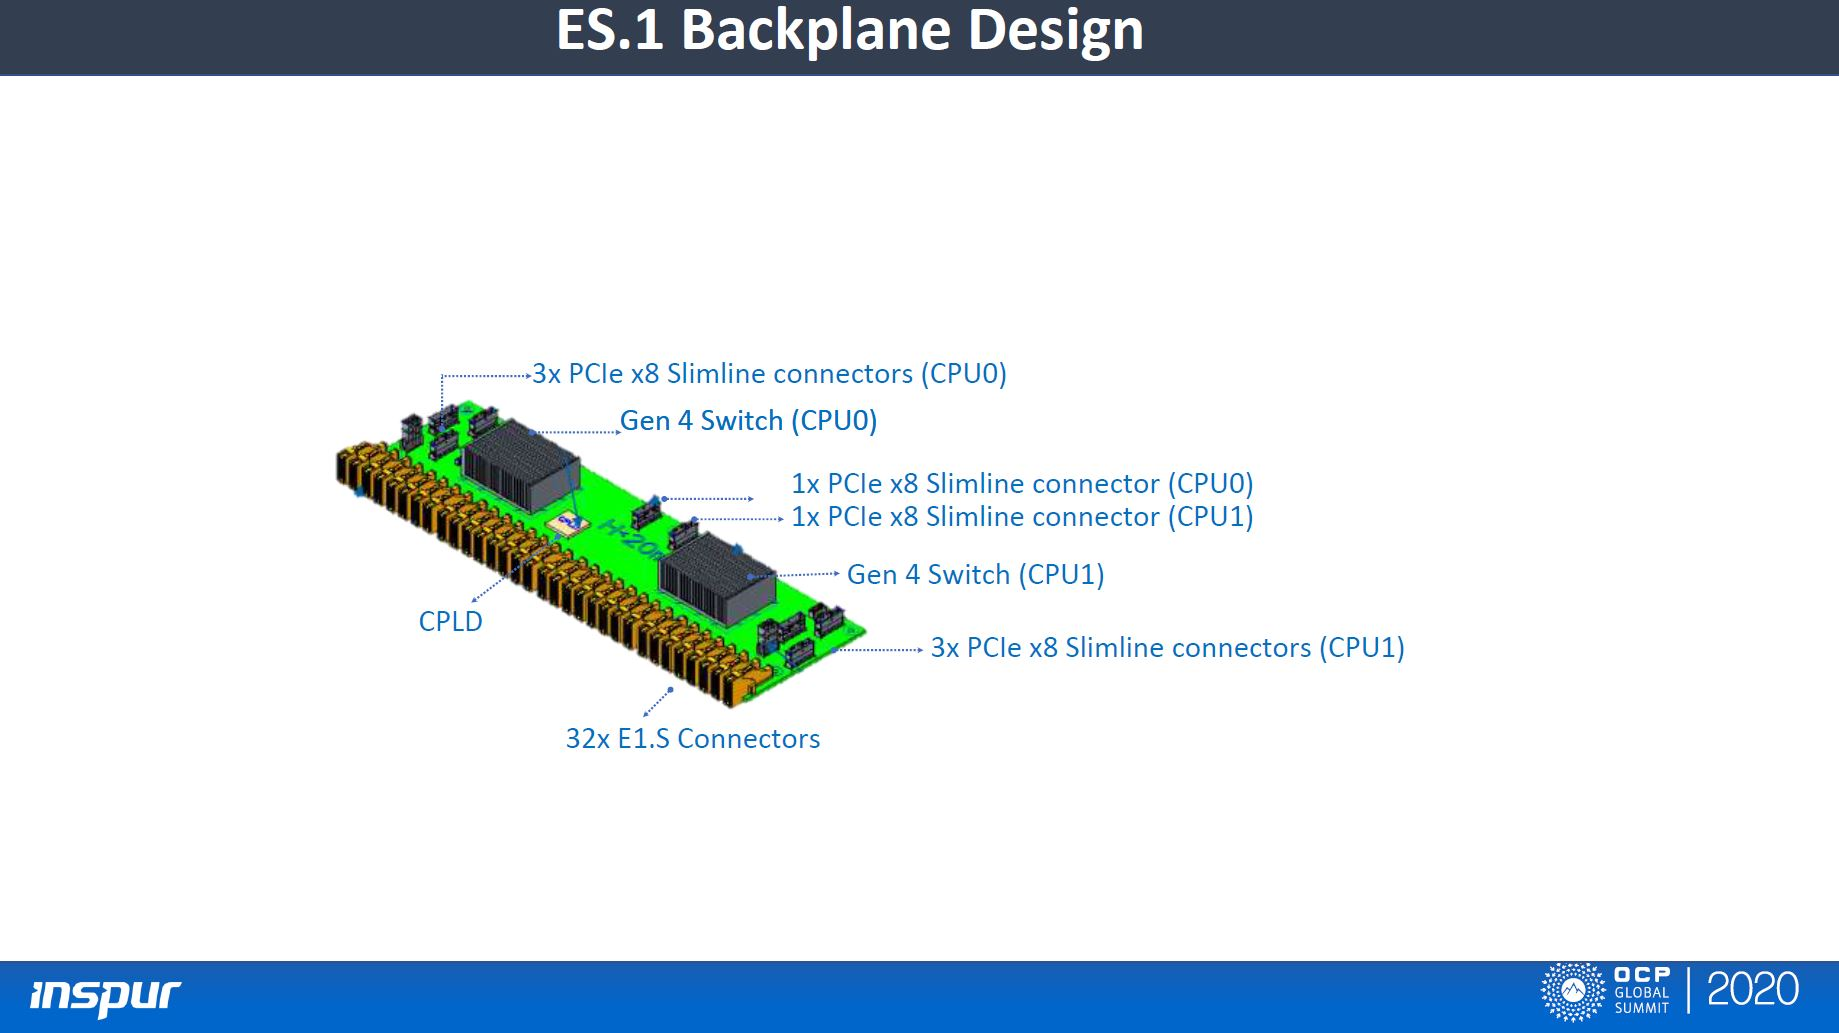 Inspur 1U Open Hardware Platform For Compute And Storage E1.S Backplane Design